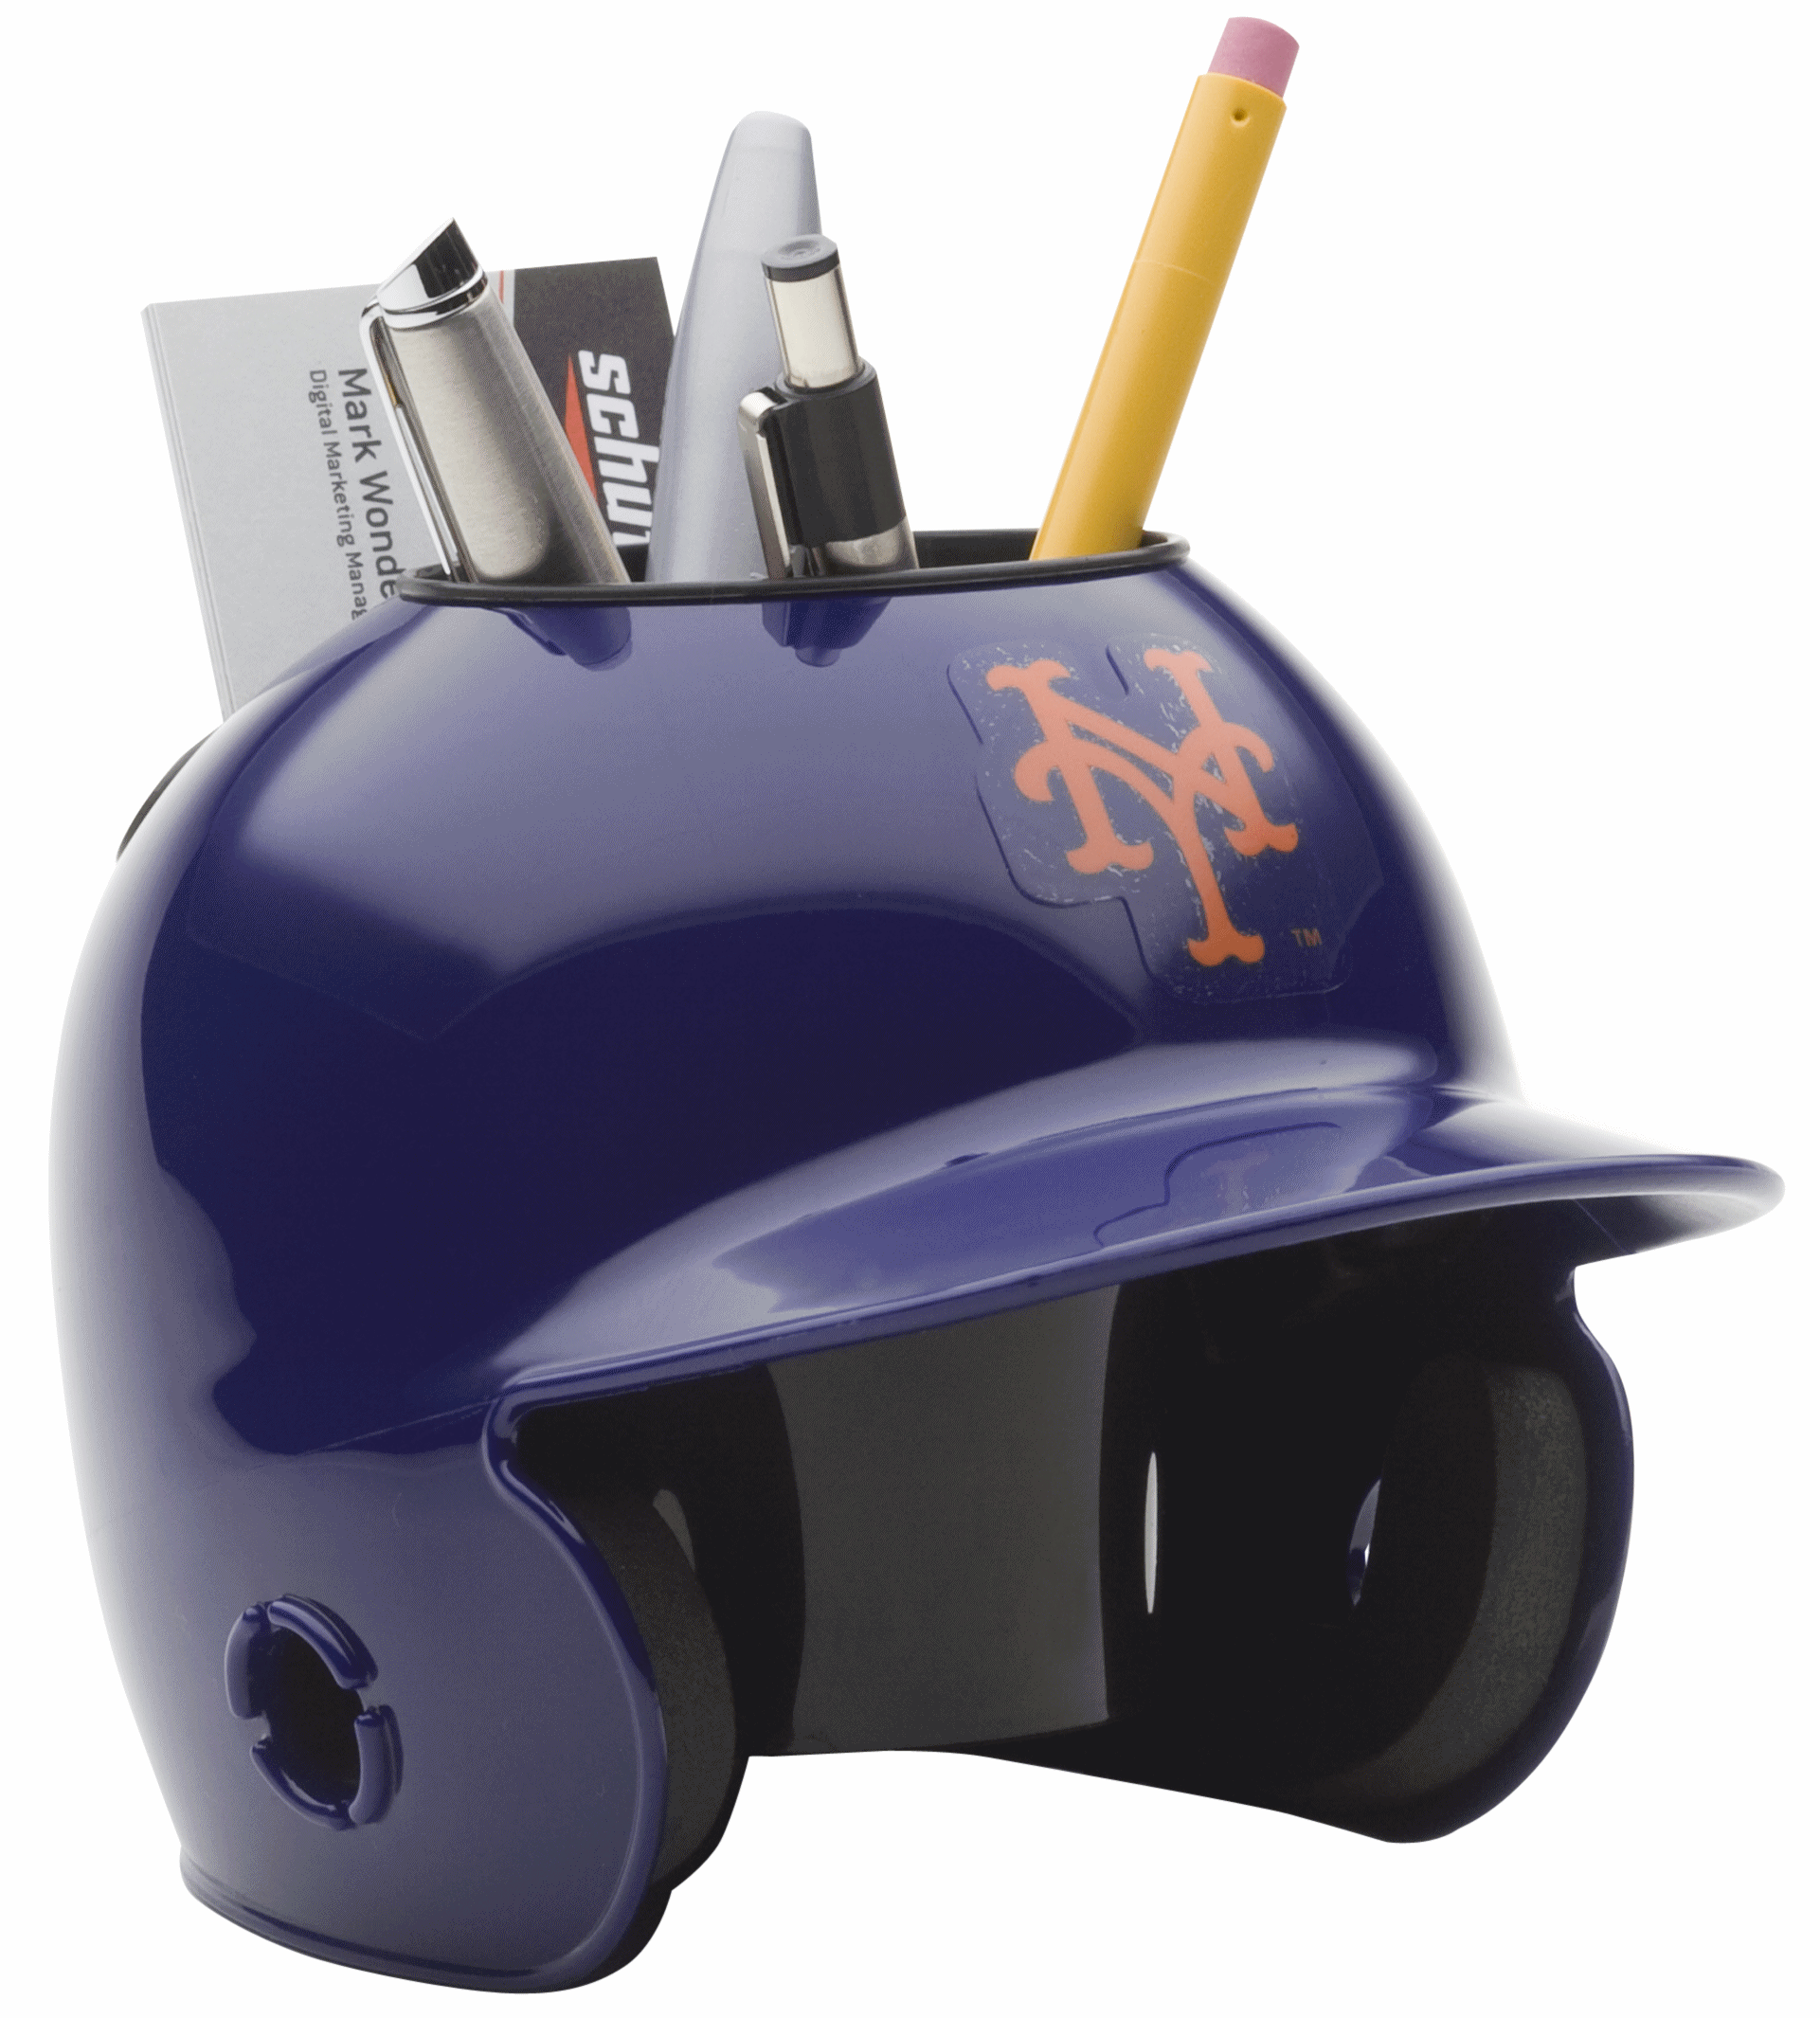 New York Mets Miniature Batters Helmet Desk Caddy